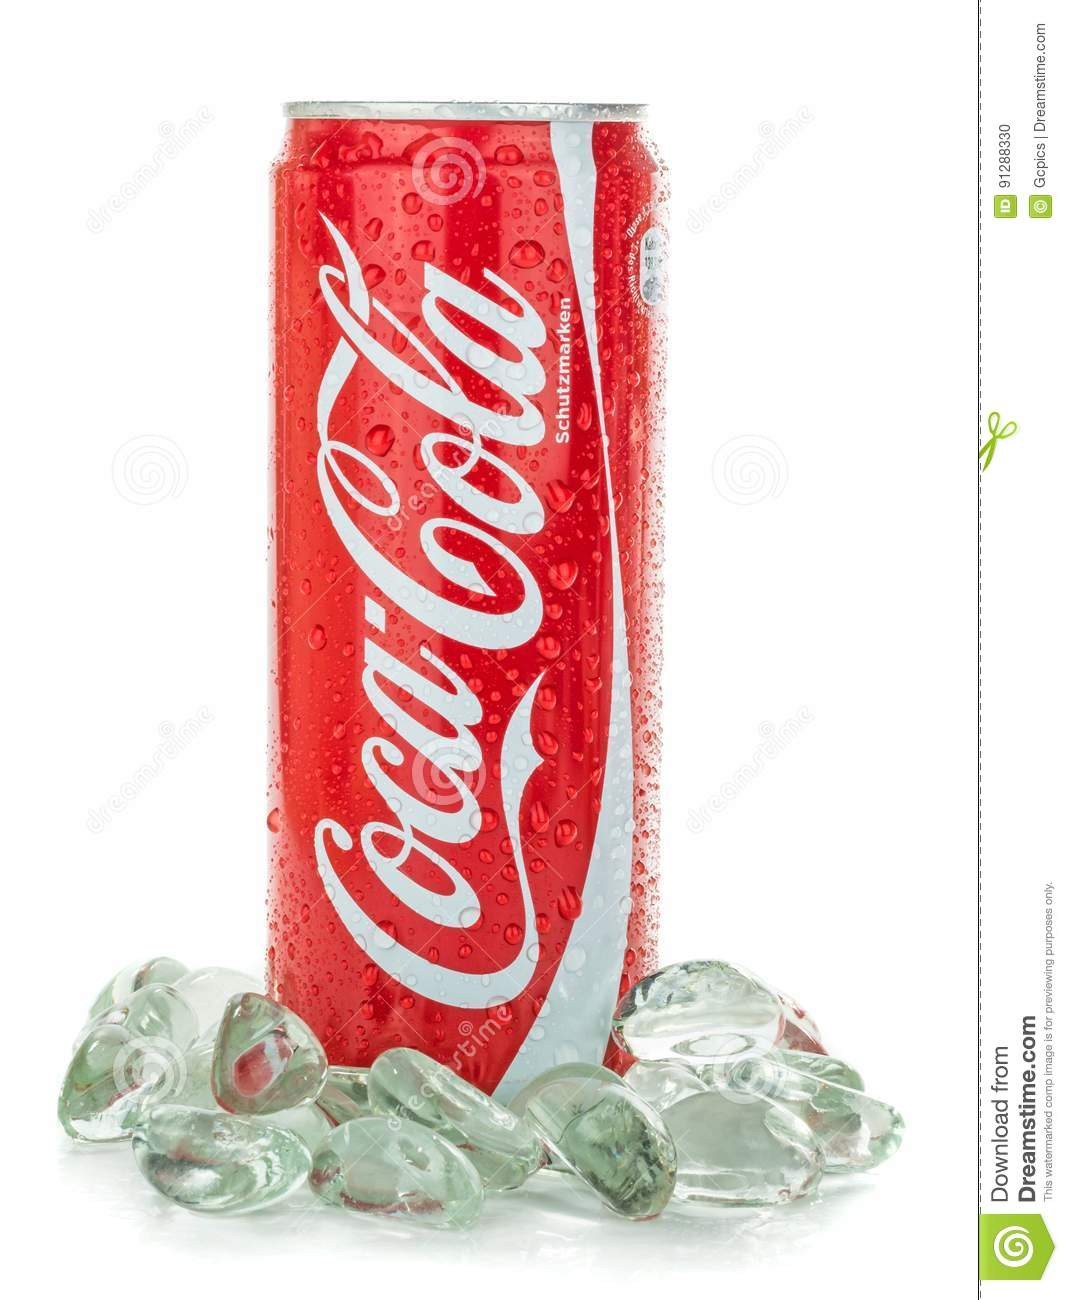 Can of Coca Cola on ice